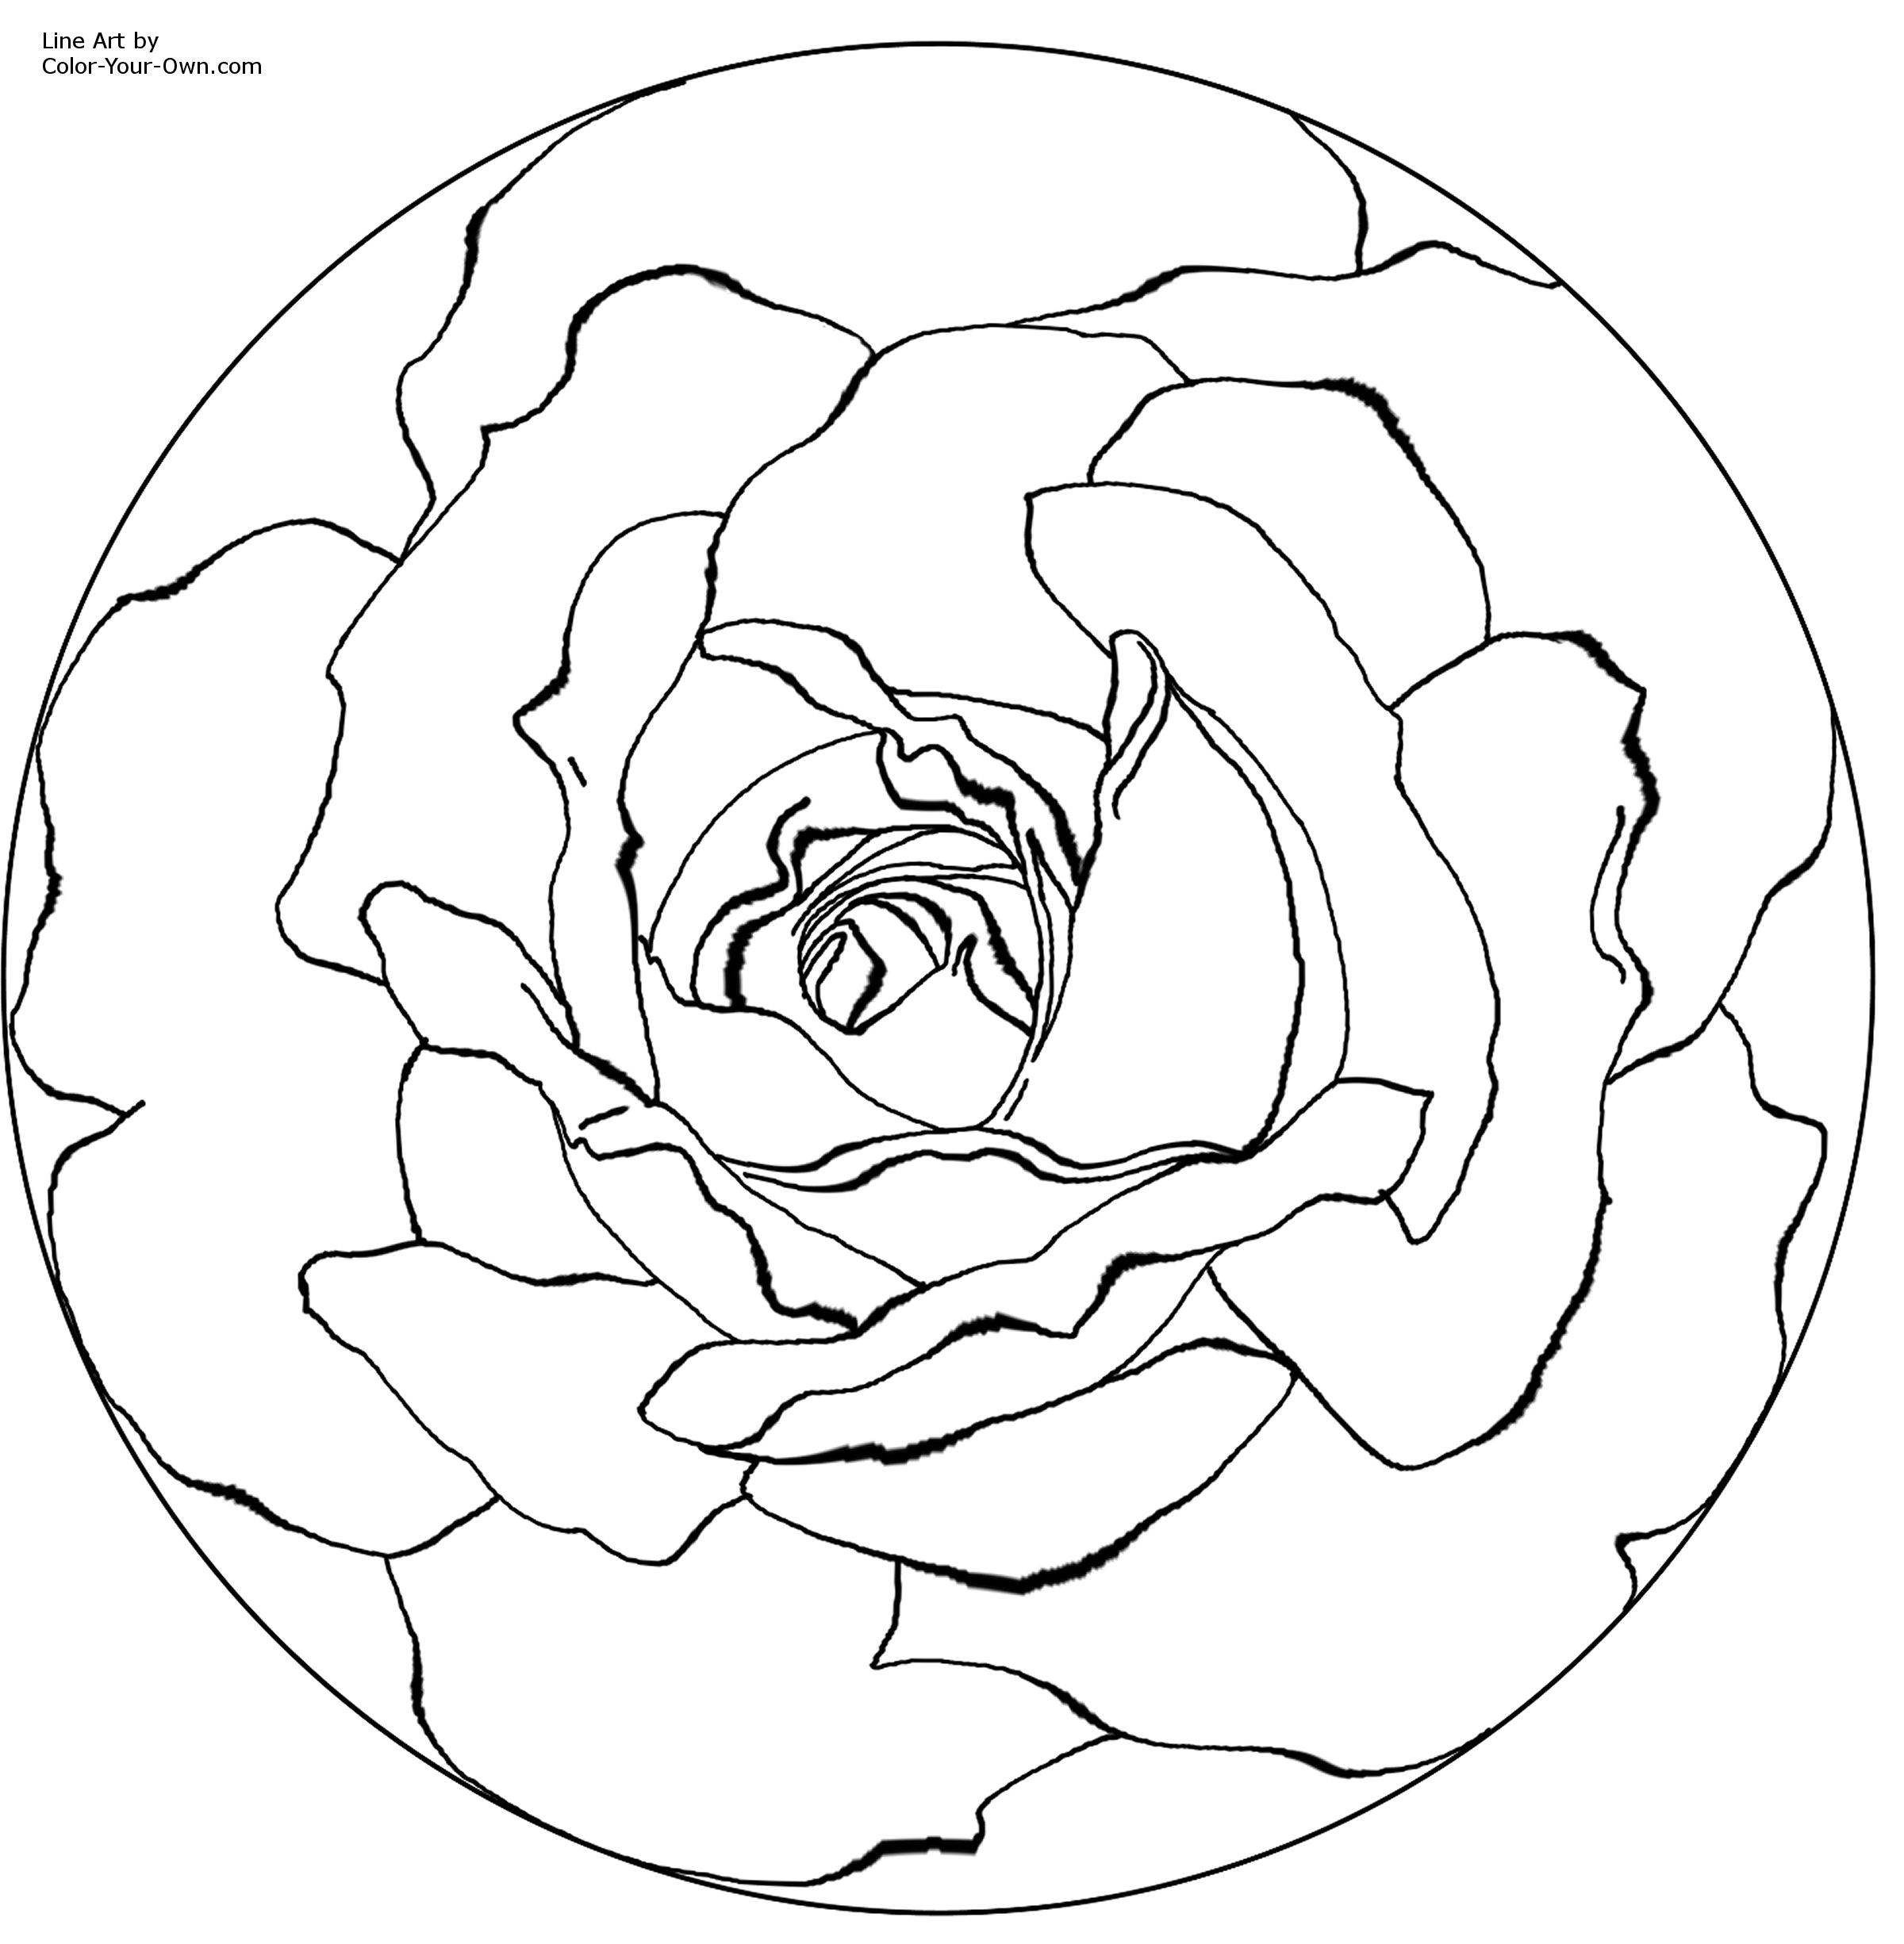 rose art coloring pages - photo#25